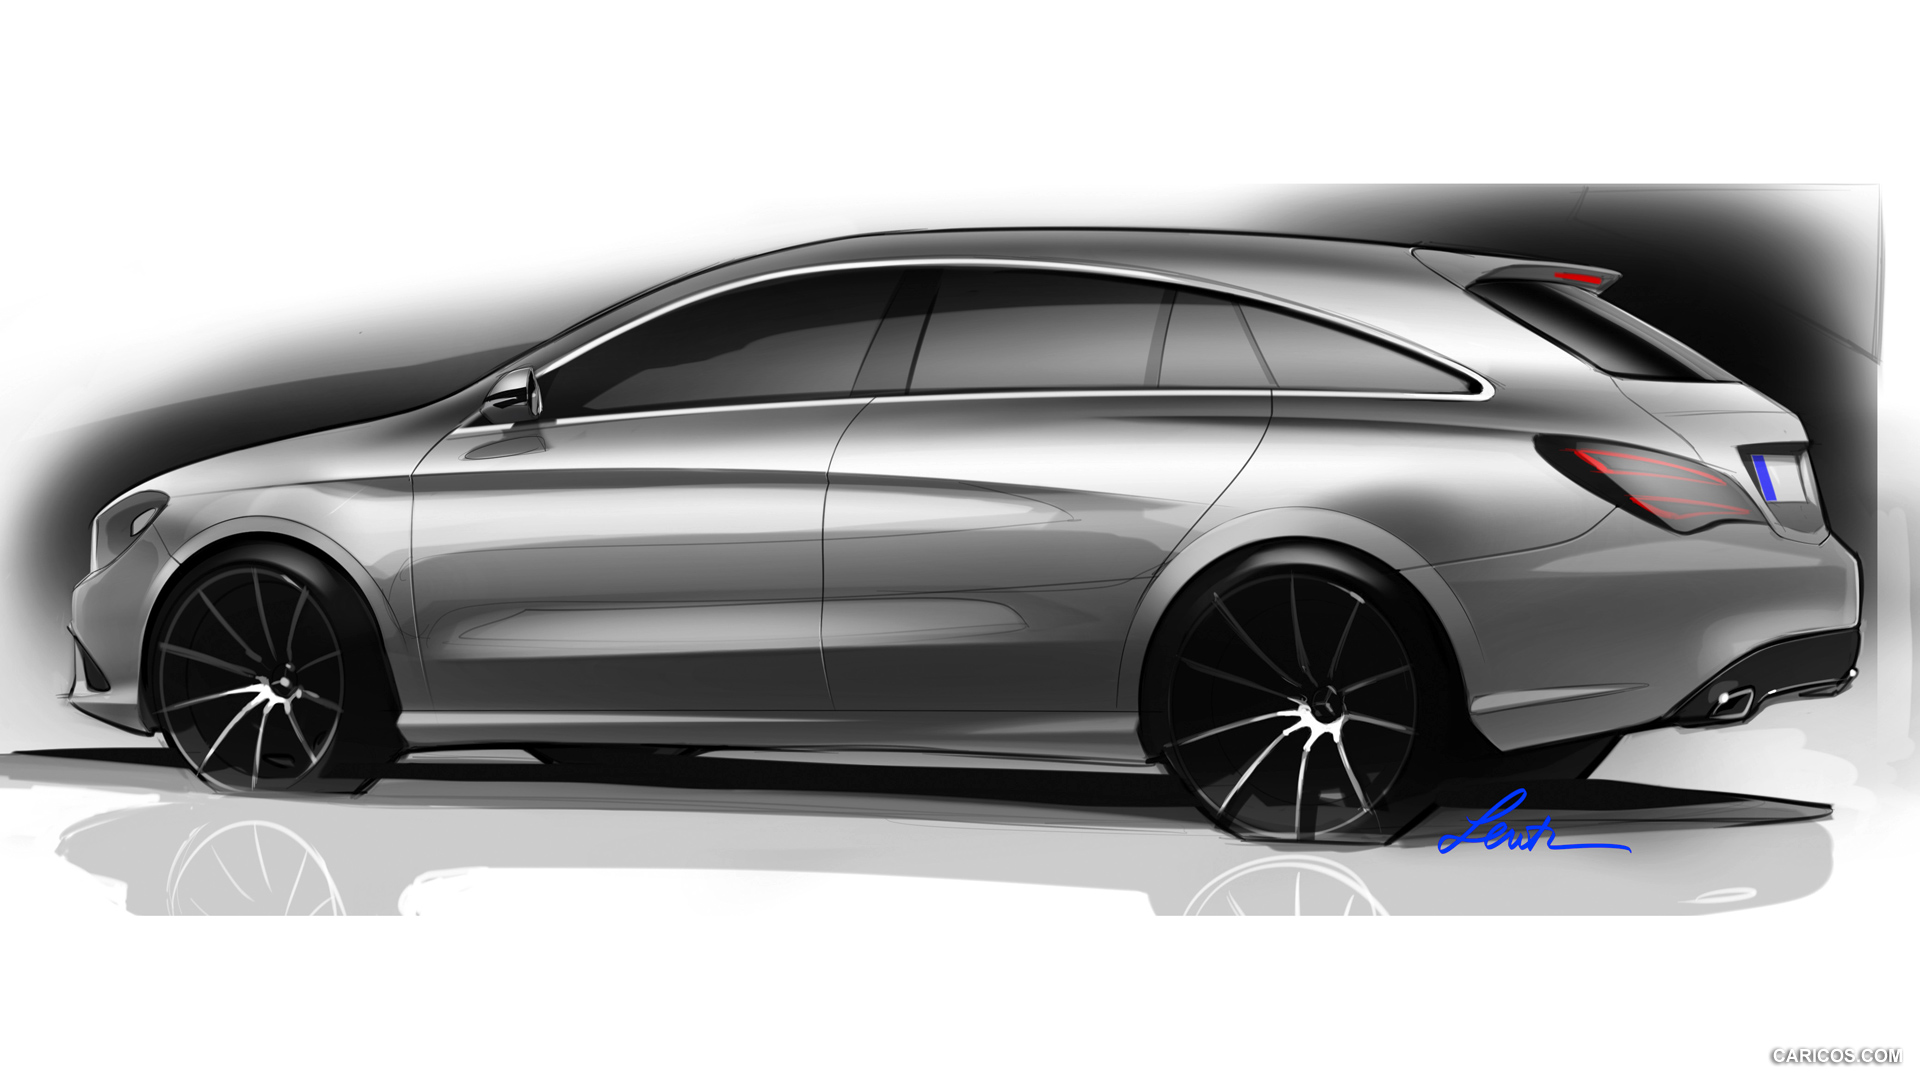 2015 Mercedes Benz CLA Class Shooting Brake   Design Sketch HD 1920x1080